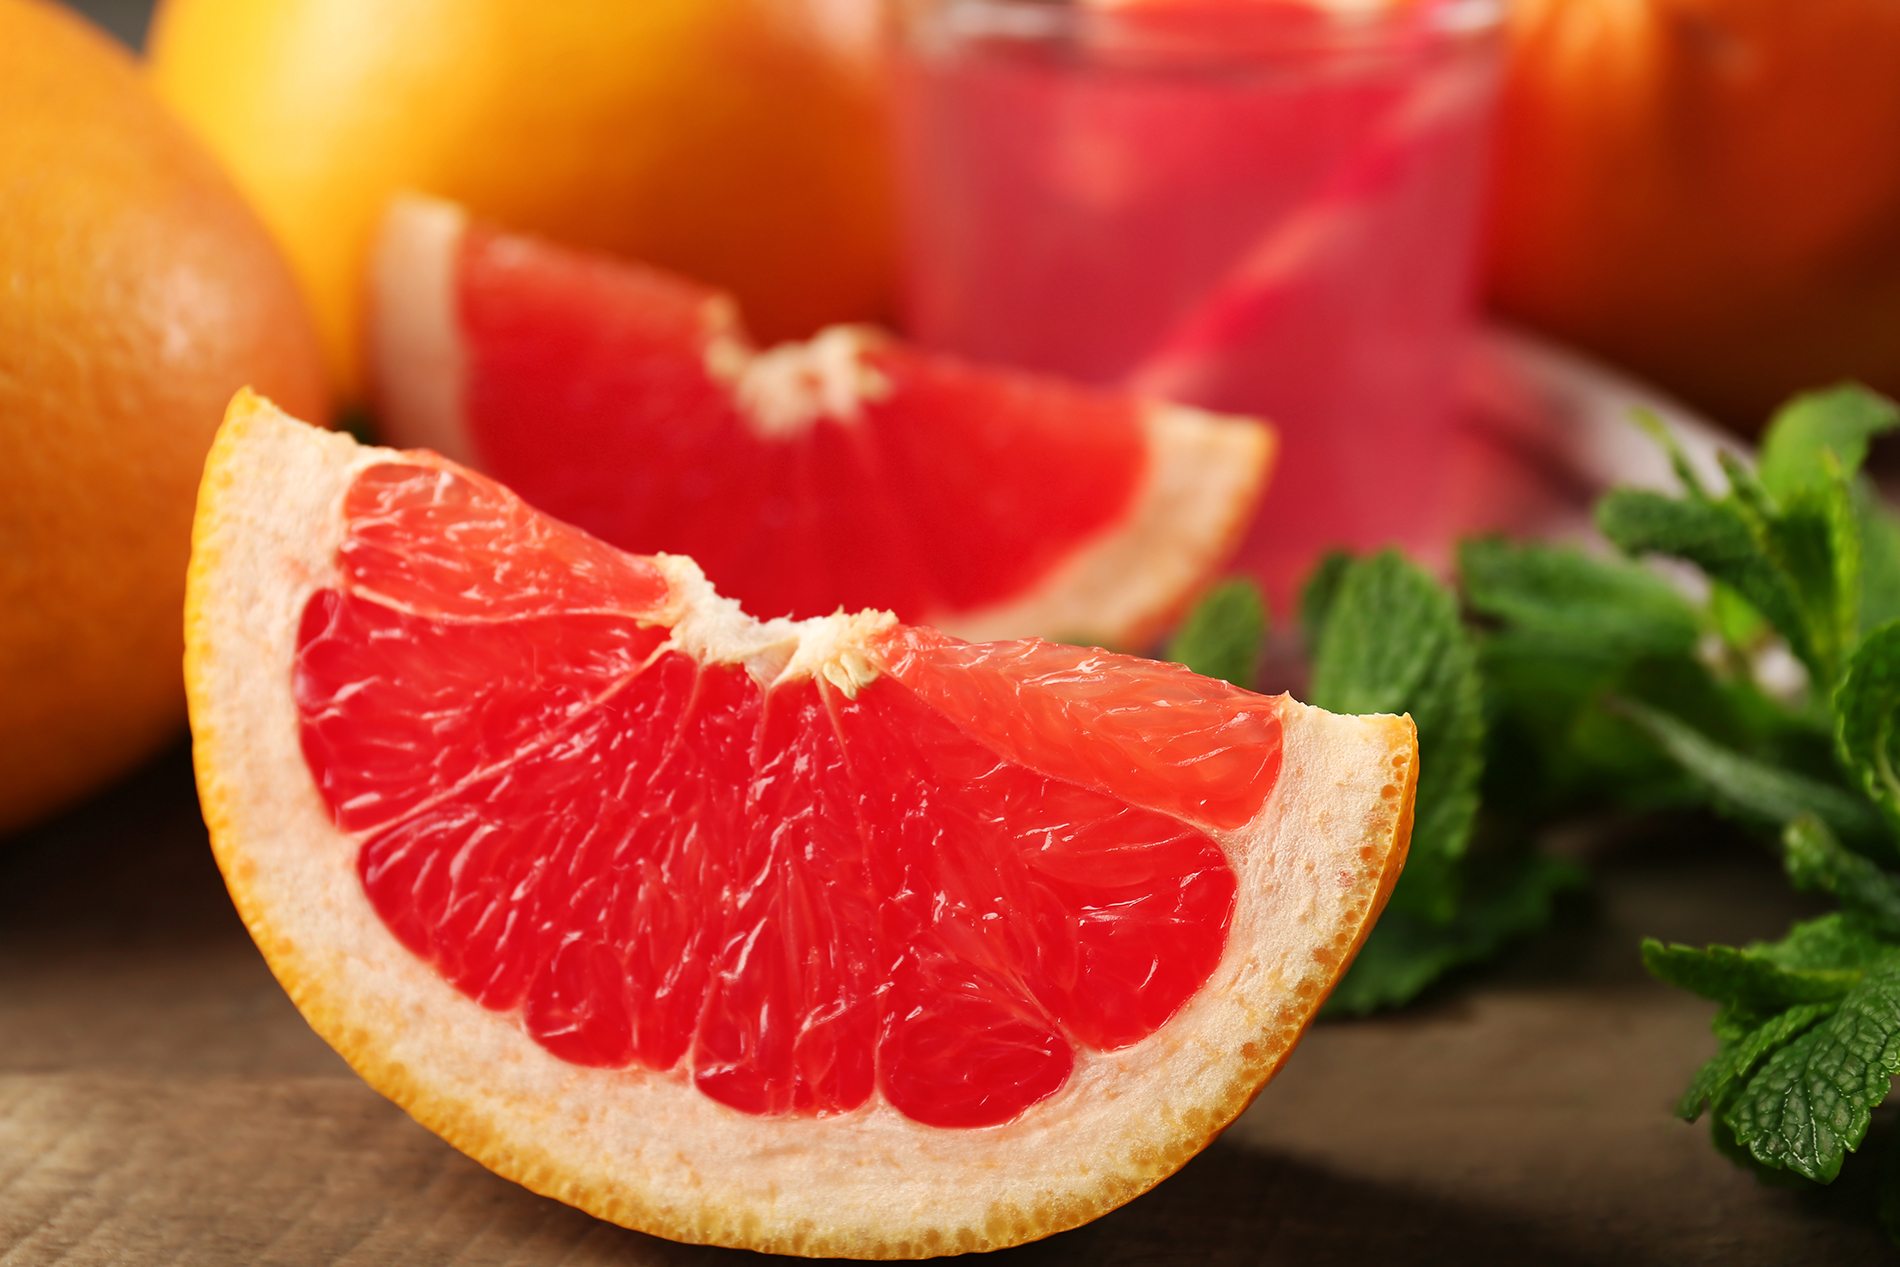 Red pomelo 53828